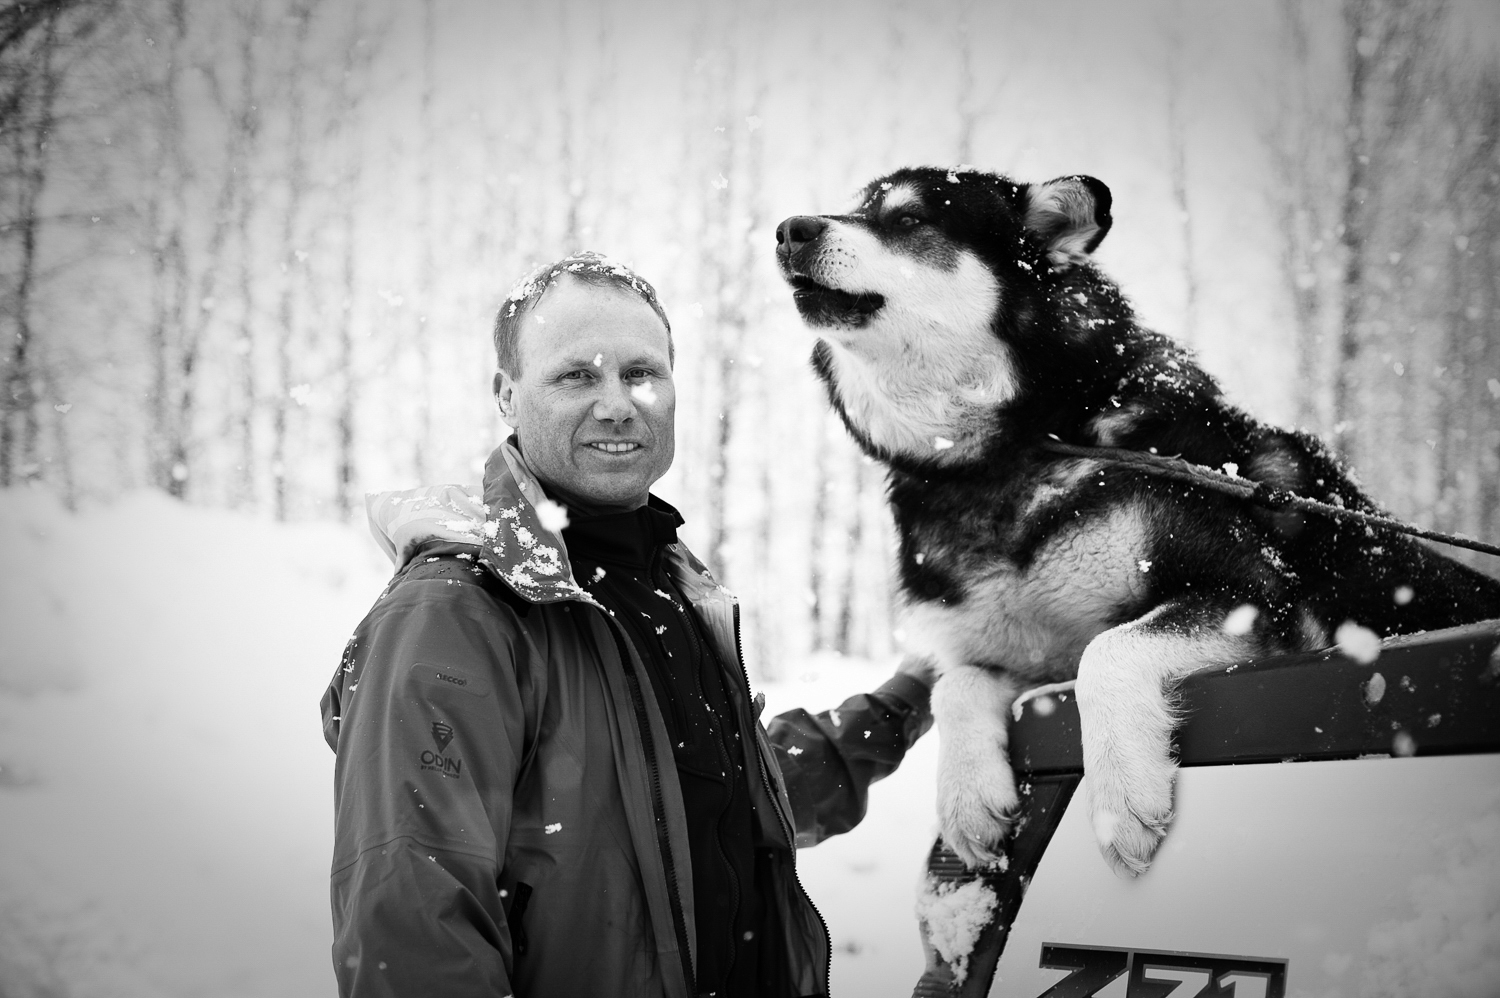 Dean Cummings founded H2O Guides in Valdez in 1995. He took second place at the inaugural World Extreme Skiing Championships in 1991, behind Doug Coombs. Photo: Court Leve